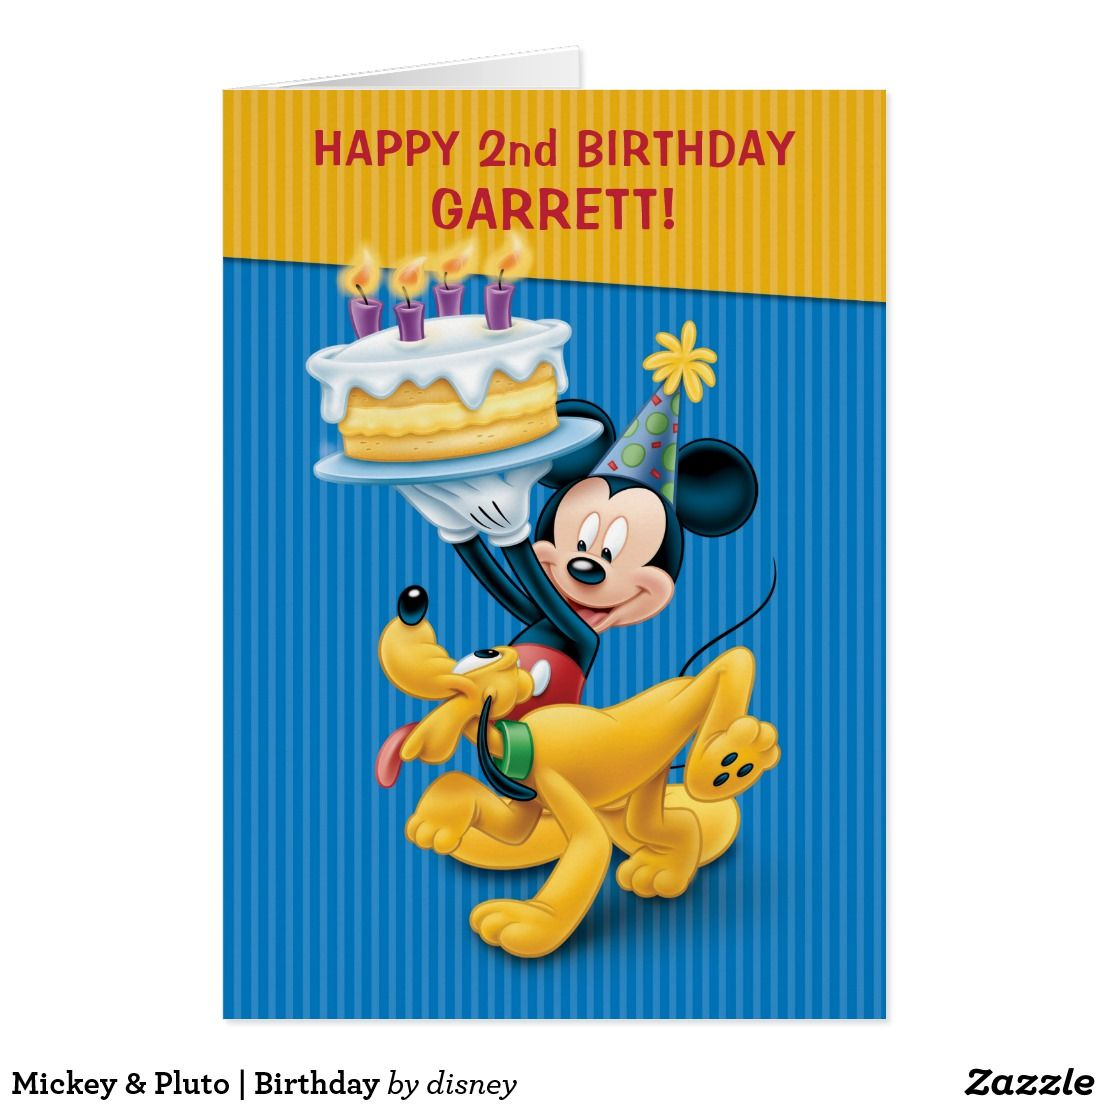 Mickey pluto birthday custom disney birthday party pinterest shop disney mickey mouse pluto birthday party card created by disney personalize it with photos text or purchase as is kristyandbryce Choice Image